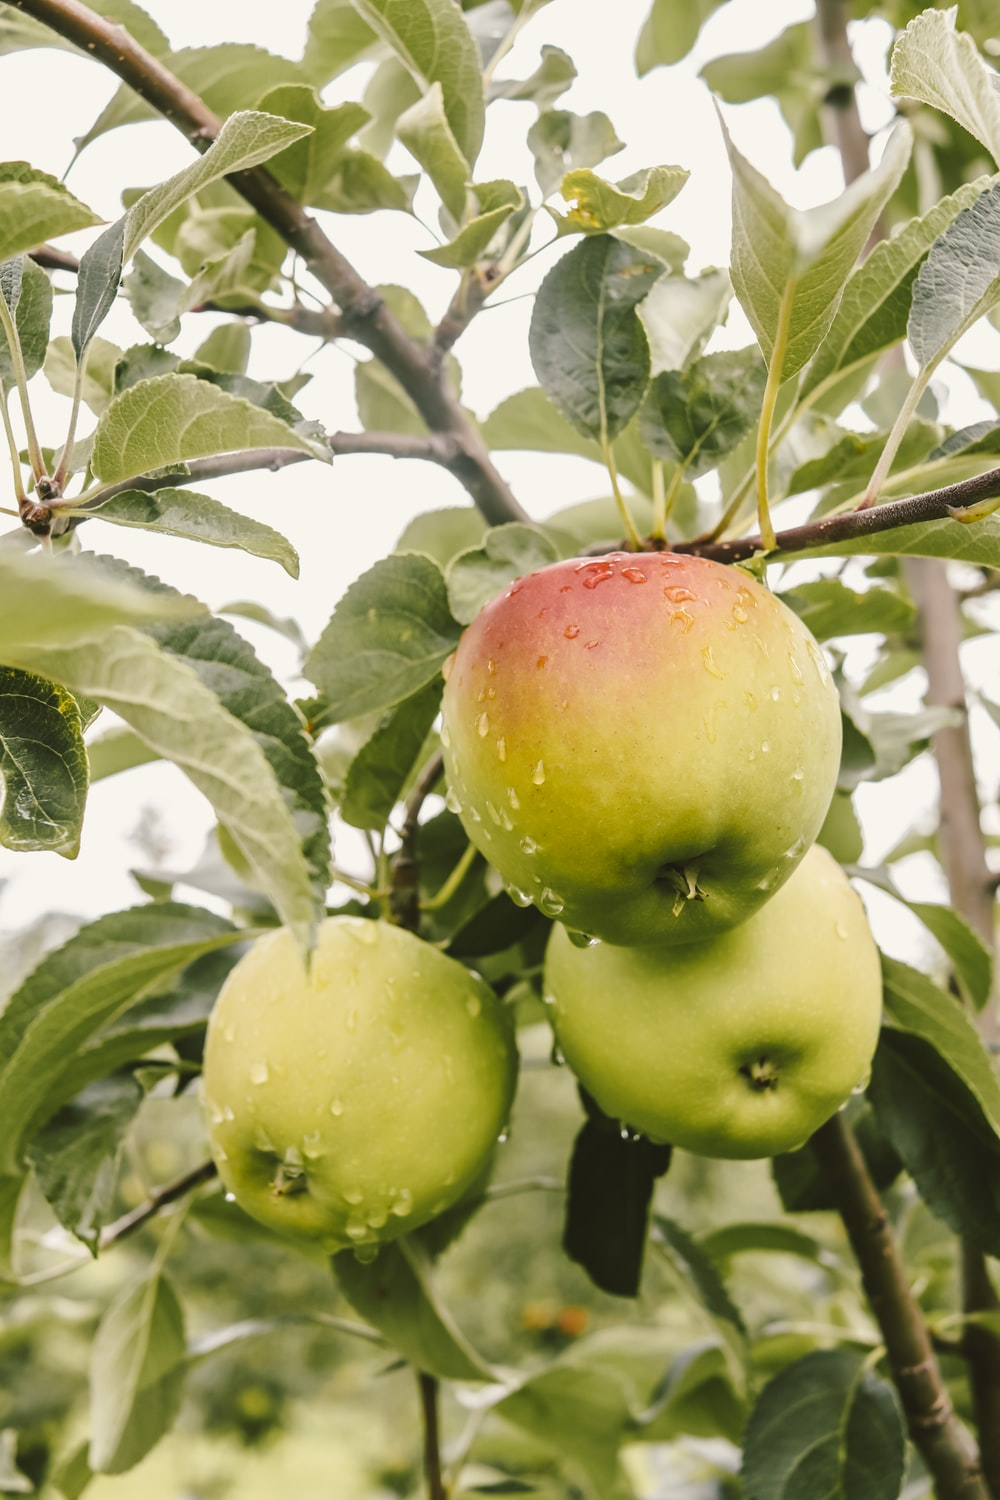 green and red apples on tree